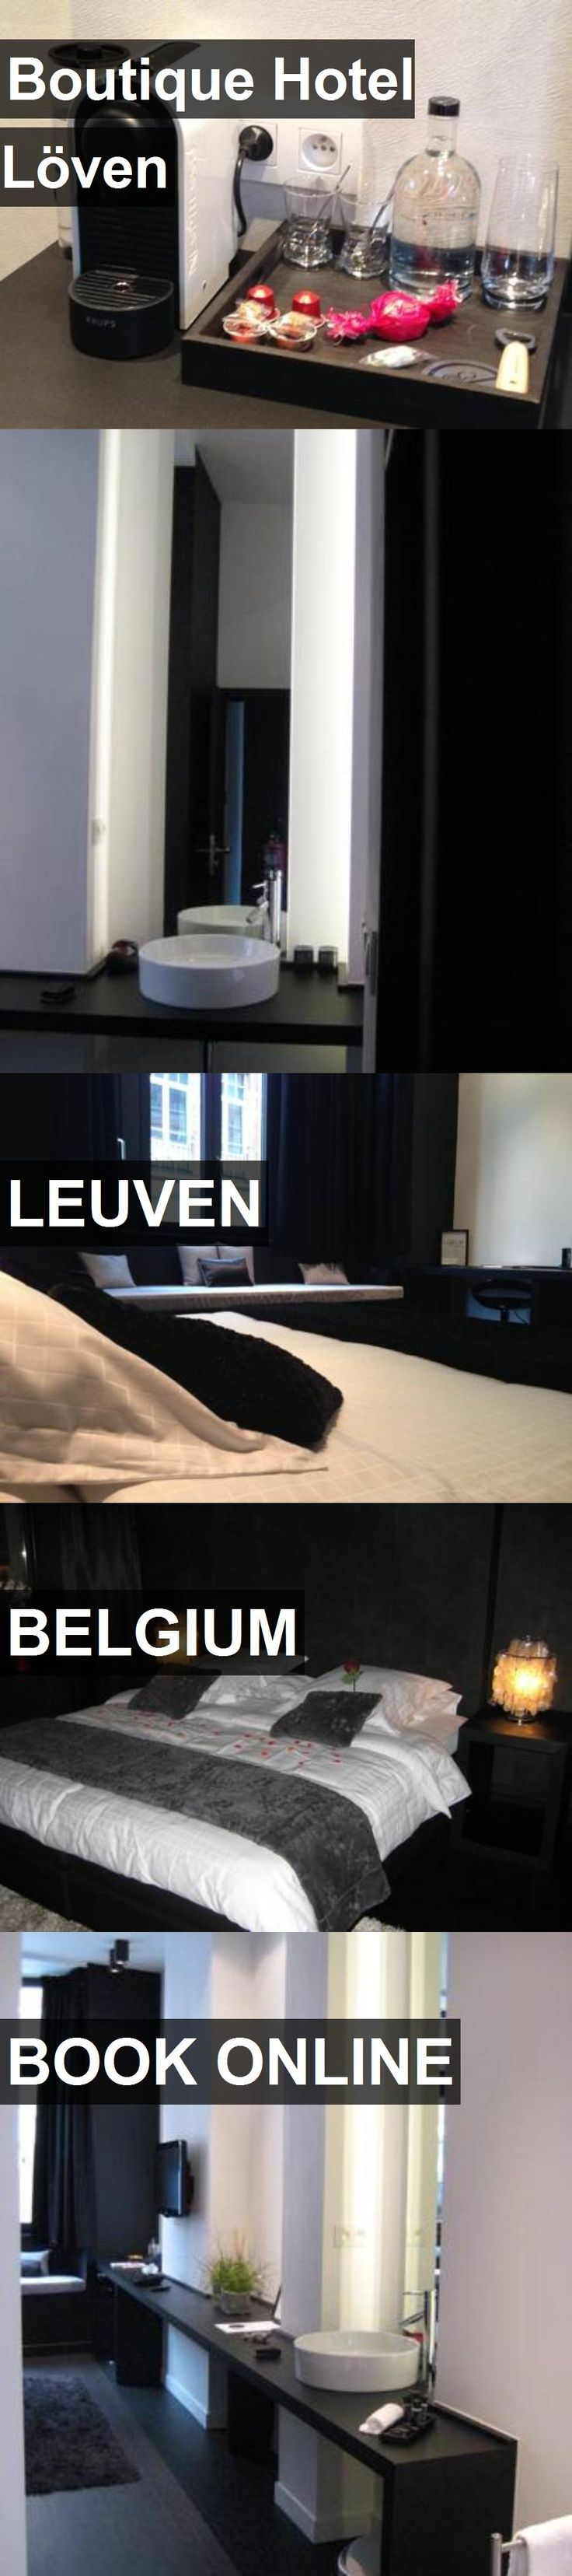 Boutique Hotel Löven in LEUVEN, Belgium. For more information, photos, reviews and best prices please follow the link. #Belgium #LEUVEN #travel #vacation #hotel